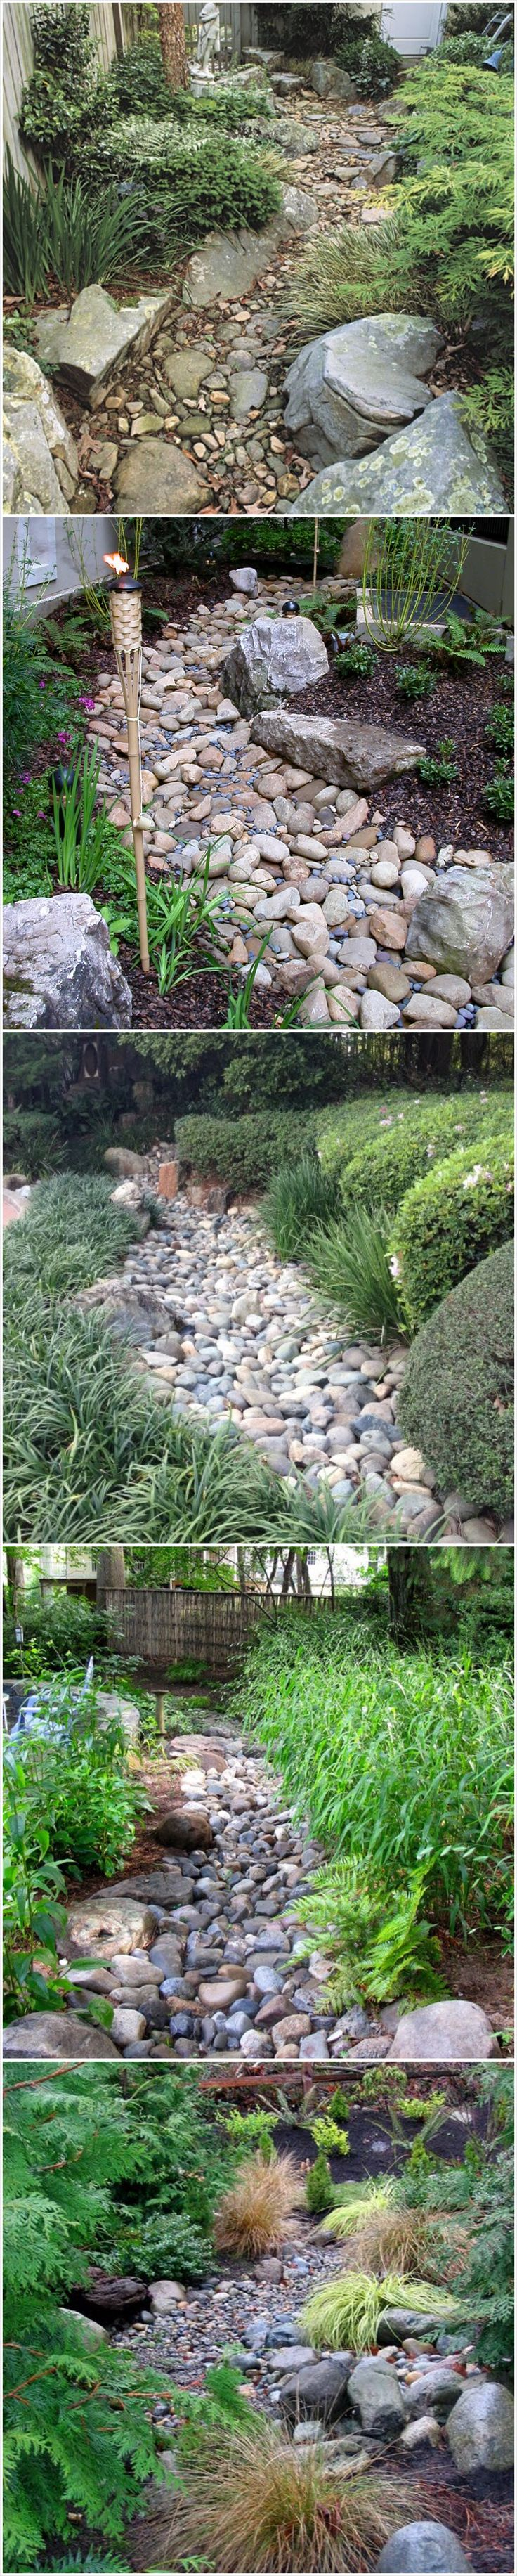 25 Gorgeous Dry Creek Bed Design Ideas. Fairies GardenGarden ArtGarden ...